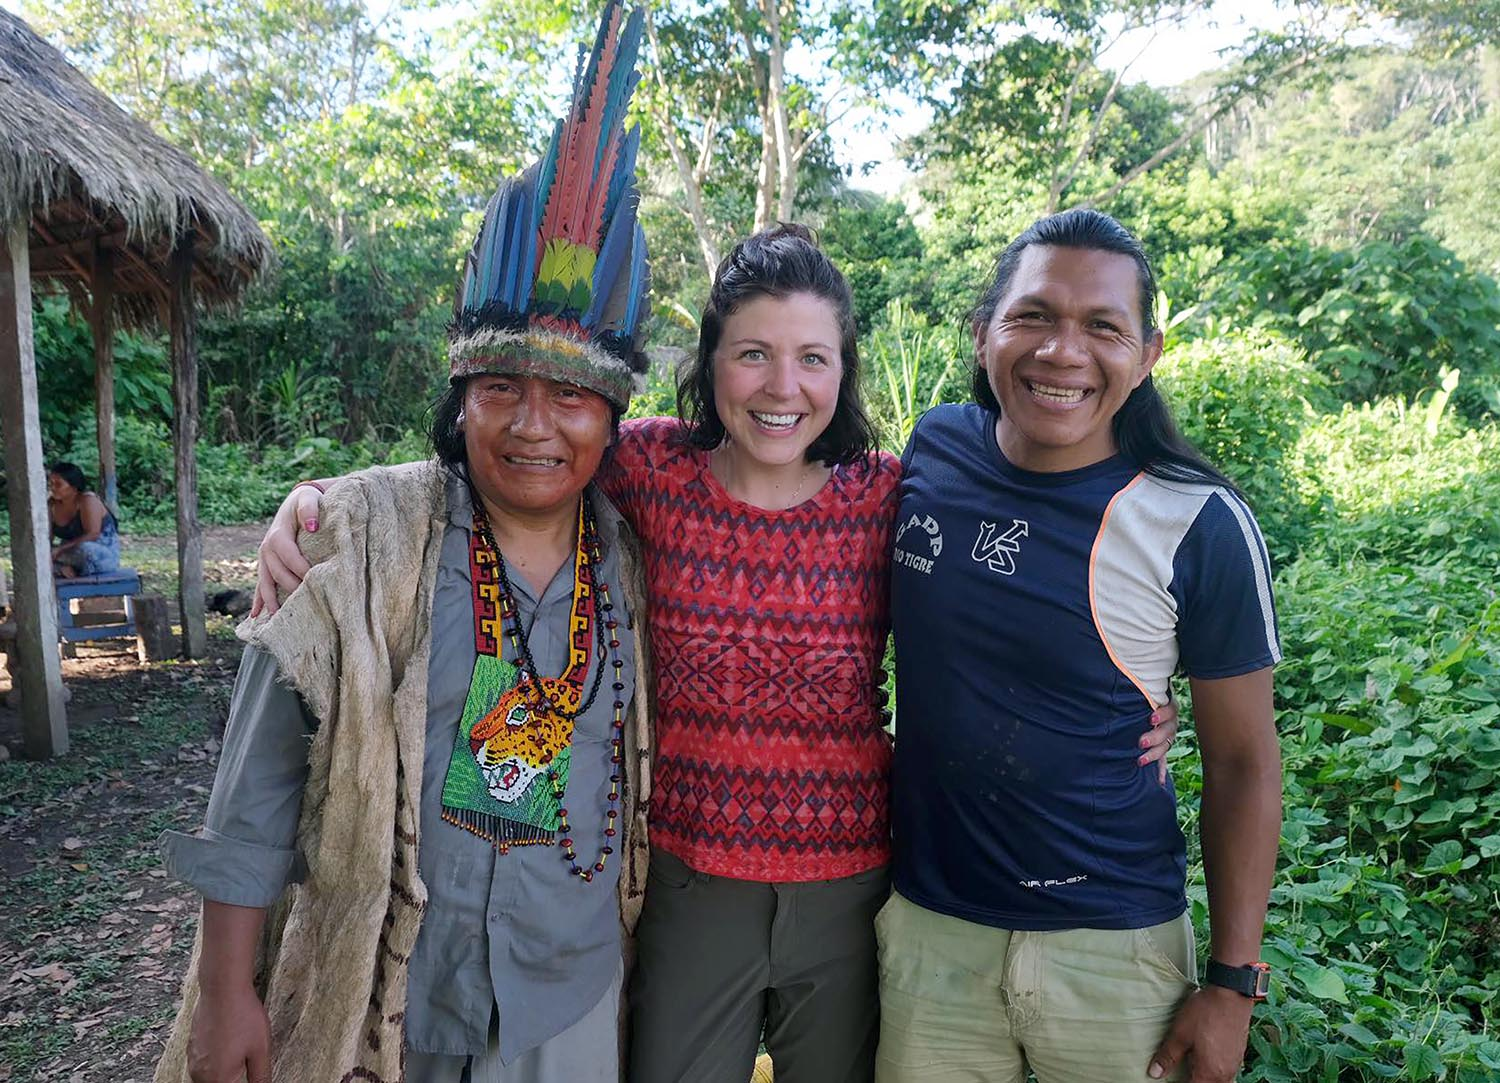 Megan Helberg spent two weeks living in the Amazon rainforest with the indigenous Sapara people during a 2019 trip to Ecuador.